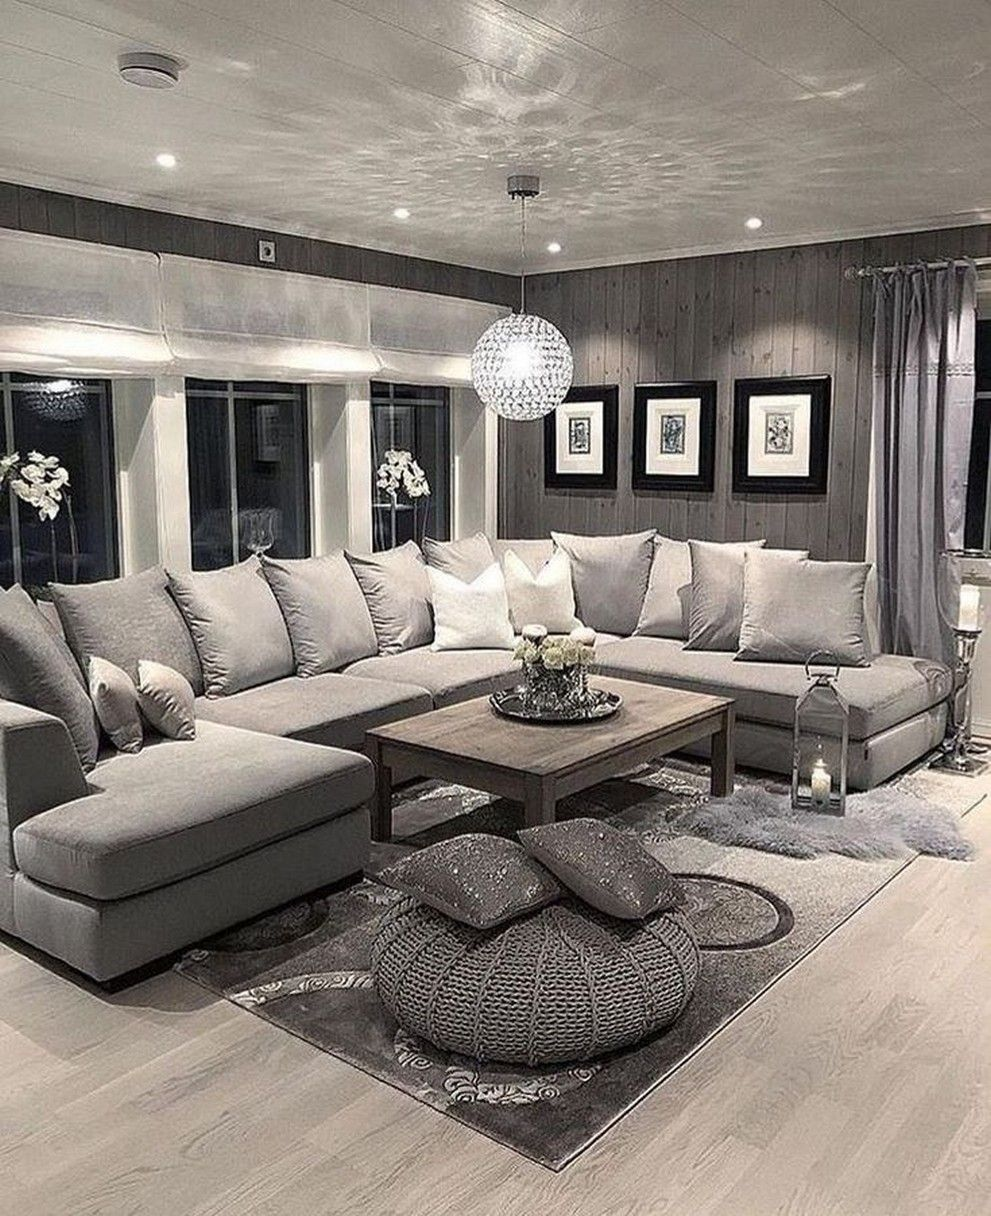 Functional Scandinavian Design Living Room Decor Apartment Elegant Living Room Decor Elegant Living Room